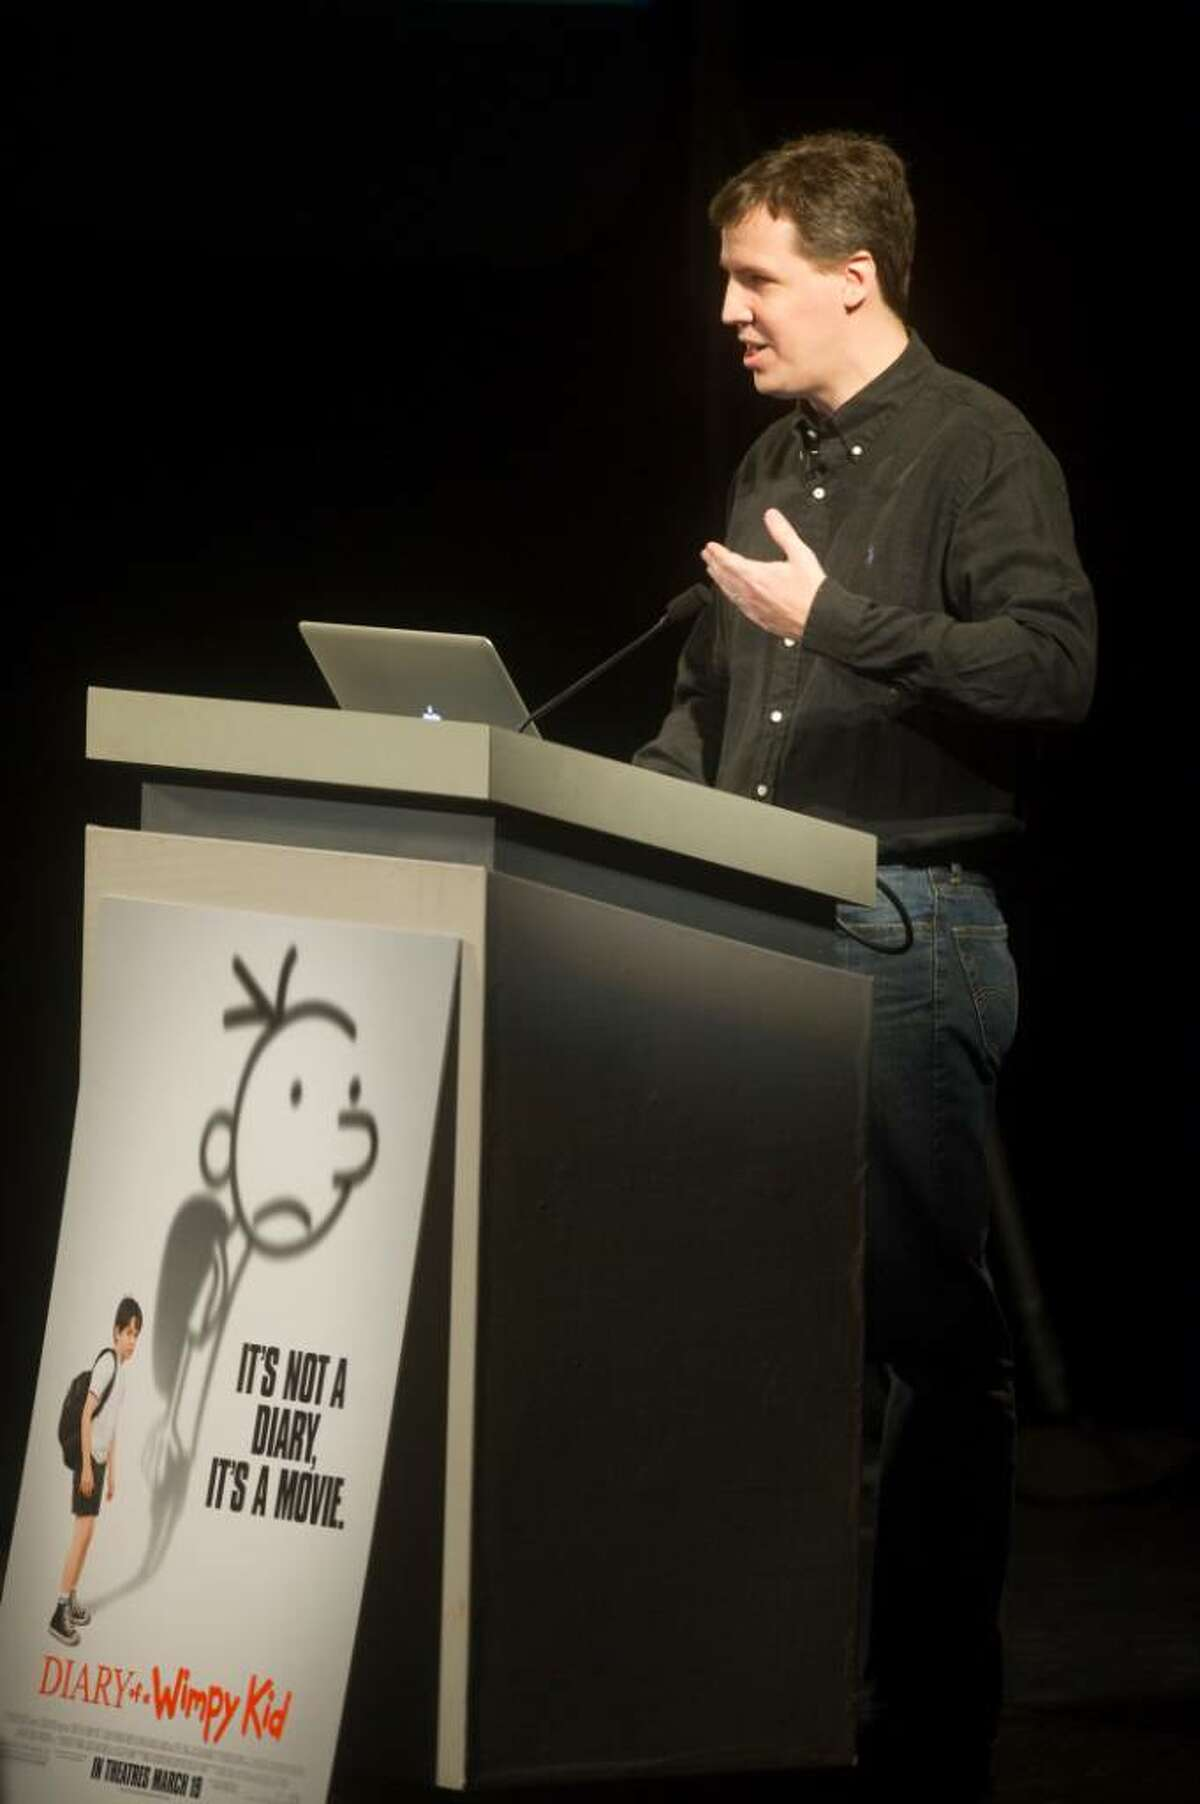 Jeff Kinney, author of the Diary of a Wimpy Kid book series, speaks during an event promoting the premiere of Diary of a Wimpy Kid at the Palace Theater in Stamford, Conn. on Wednesday, March 17, 2010.